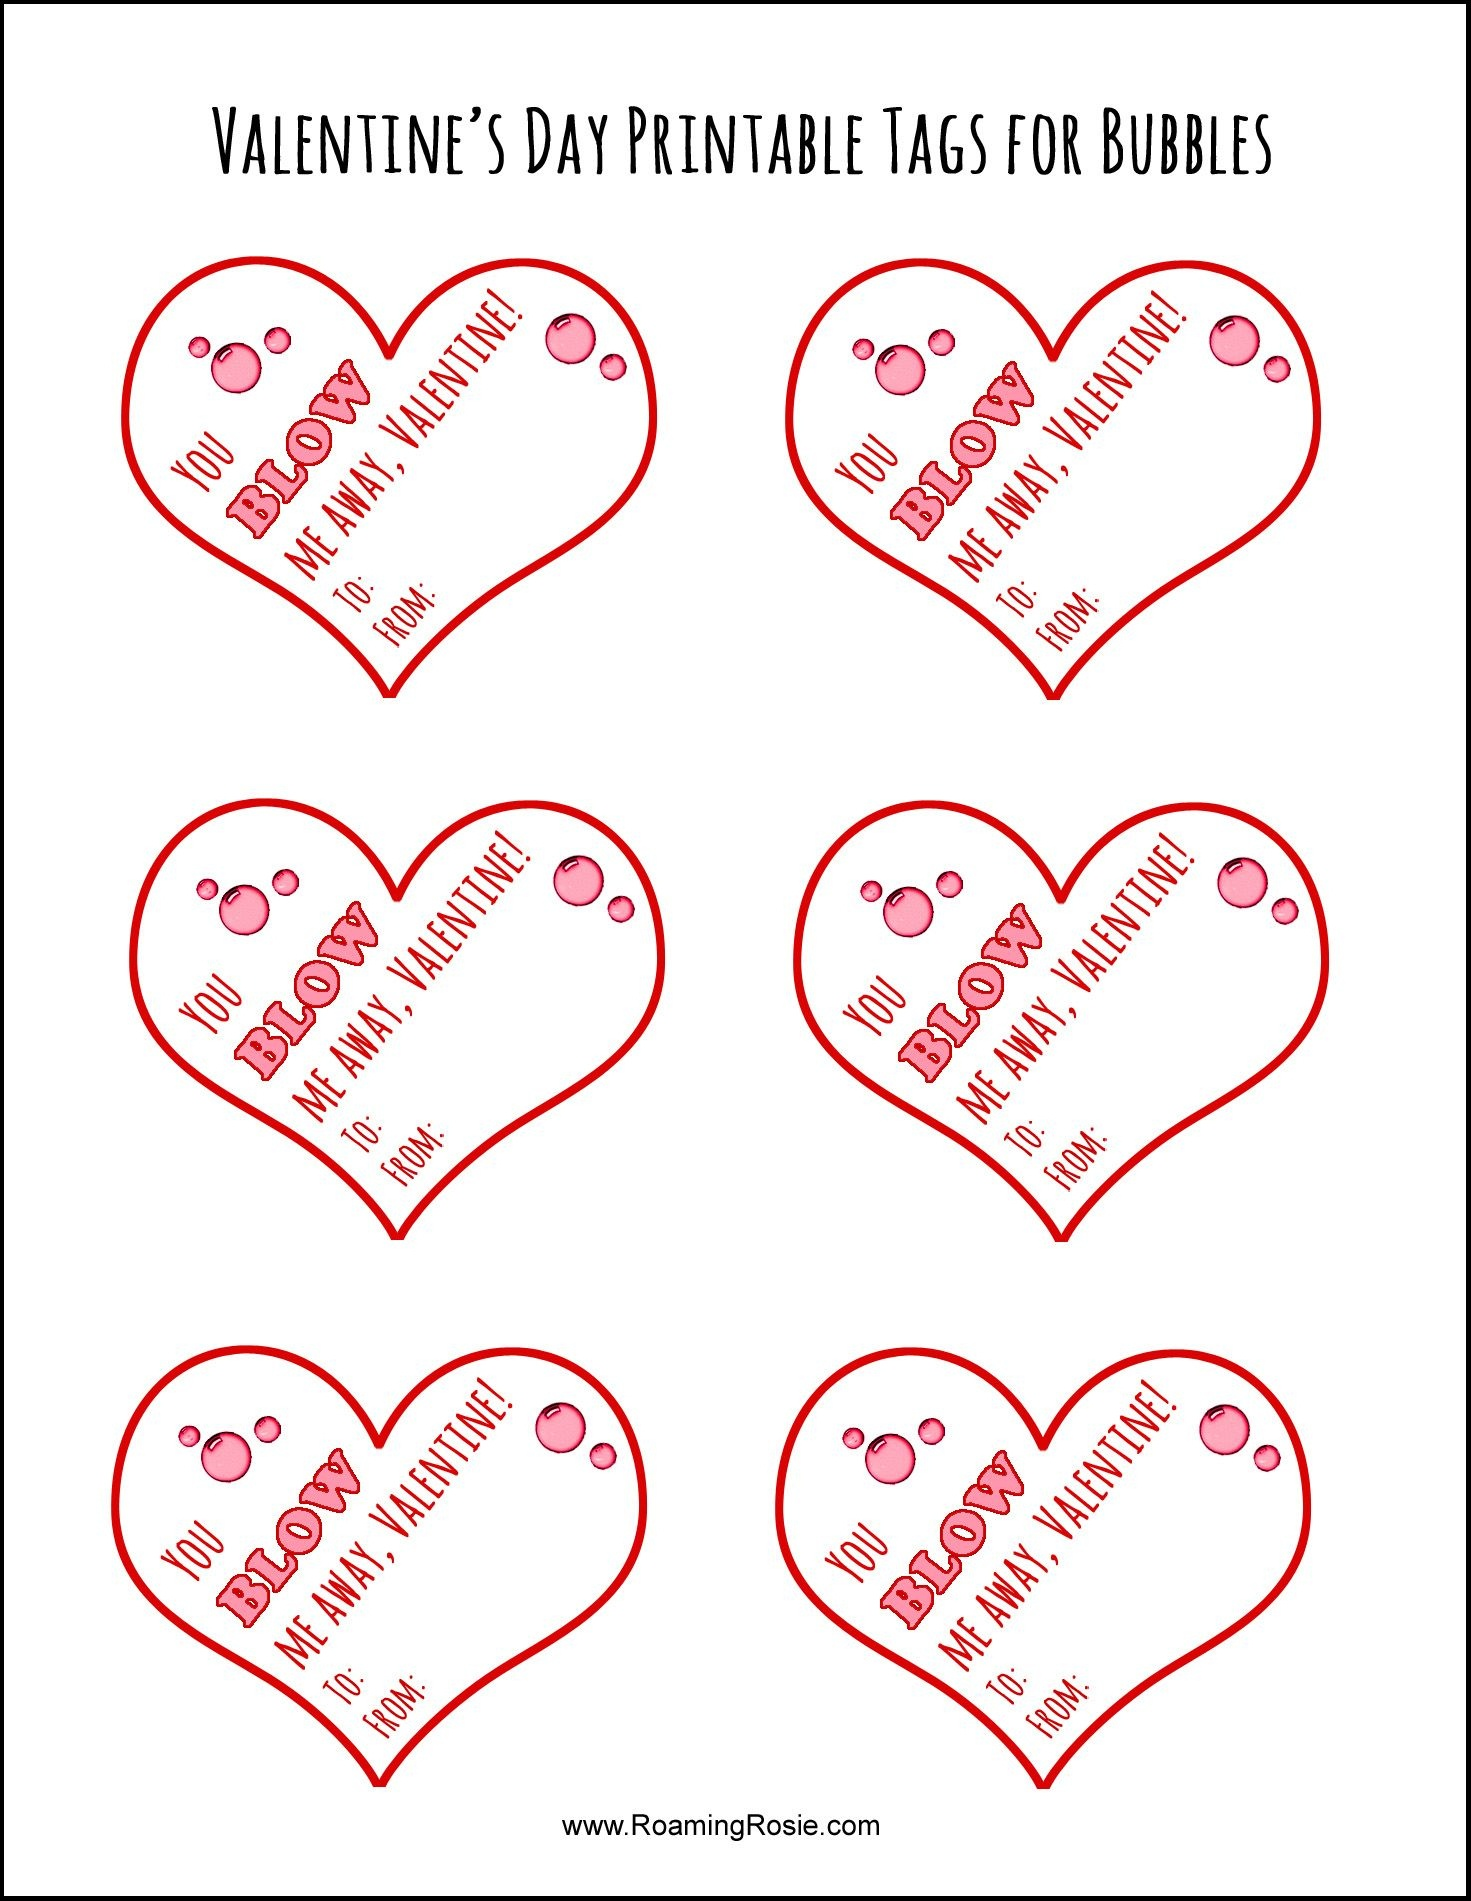 Free Printable Valentine's Day Tags For Bubbles | Valentine's Day - Free Printable Valentines Day Tags